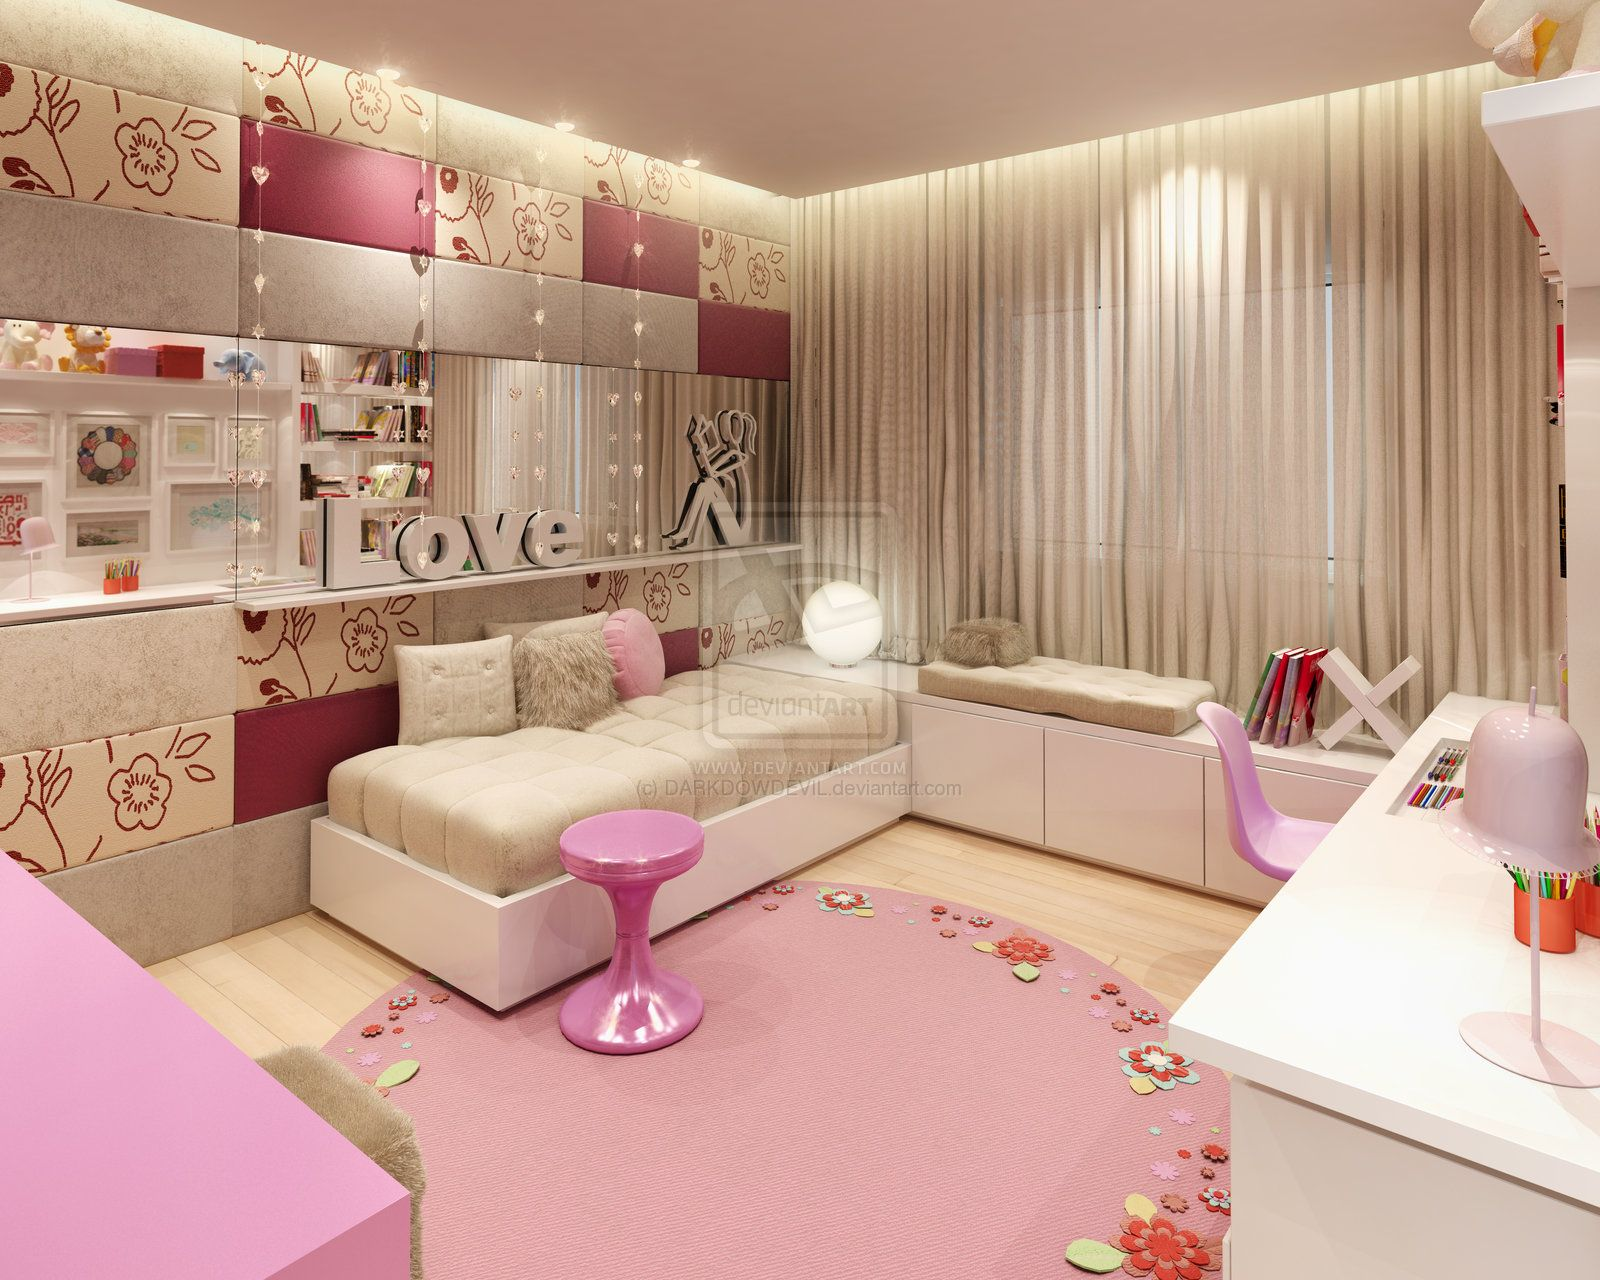 Perfect Teenage Girl Bedroom 30 dream interior design ideas for teenage girl's rooms | bedrooms